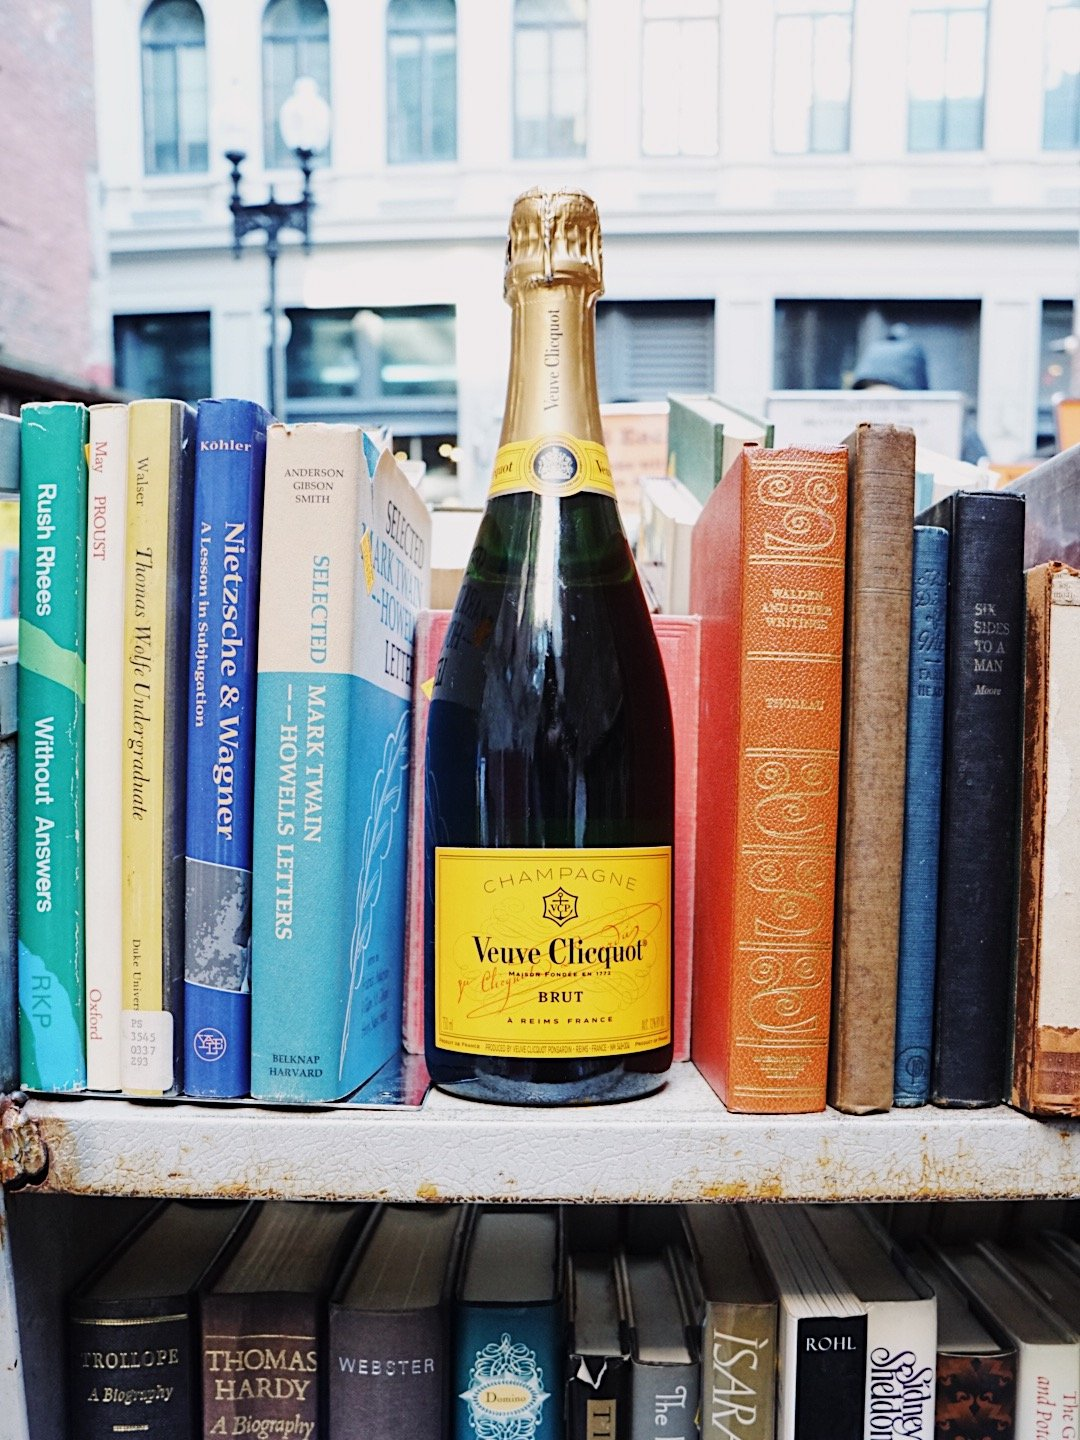 Food blogger Meaghan Murray shares an image from her partnership with Veuve Clicquot on her blog The Stopover